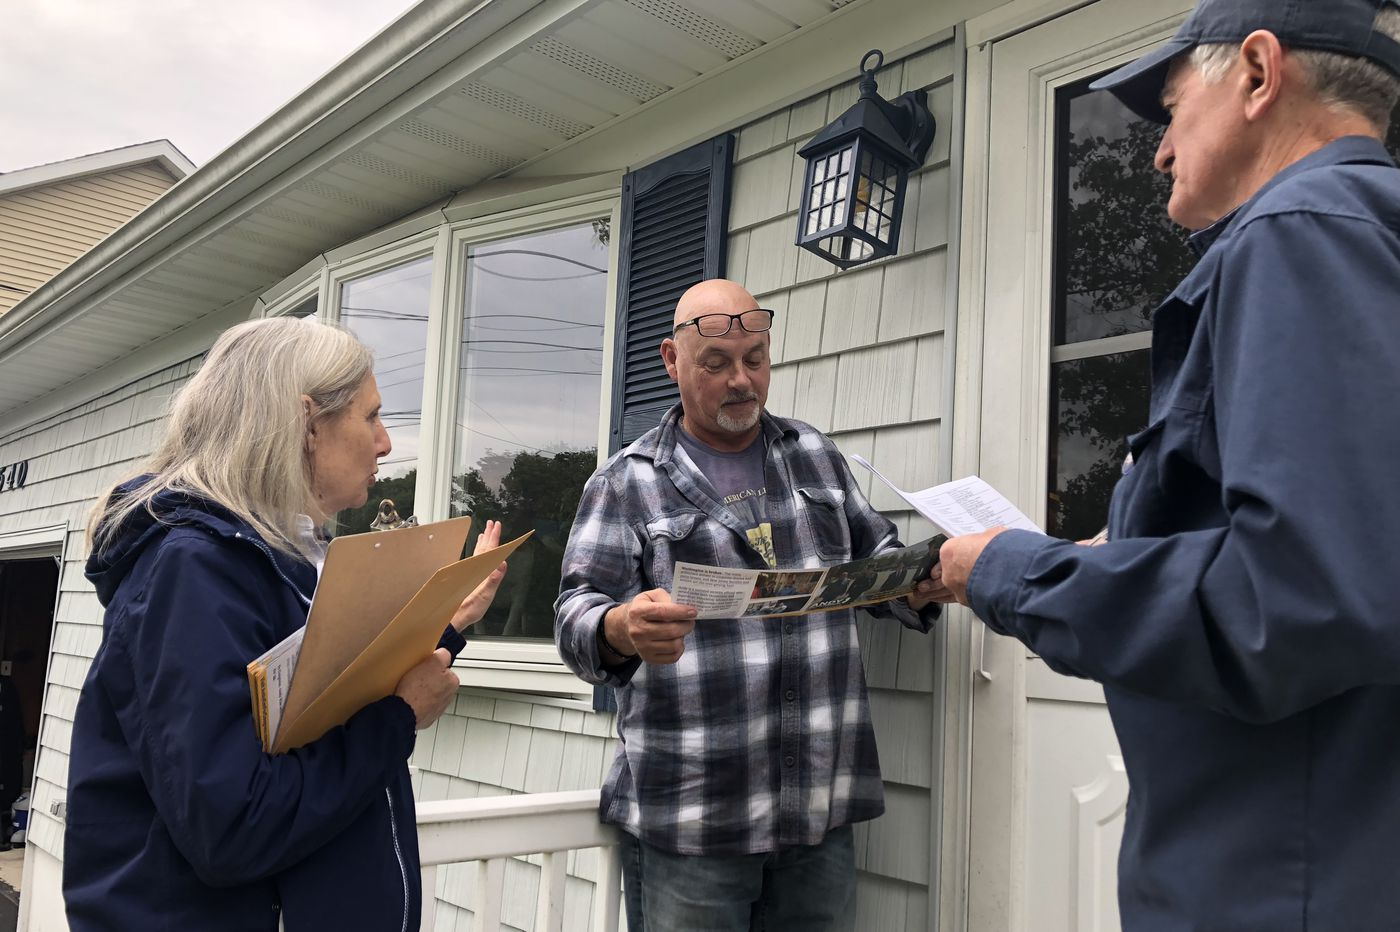 Tom MacArthur vs. Andy Kim: Will 17,000 door knocks in a weekend and Piper Perabo be the difference in New Jersey's 3d Congressional District?